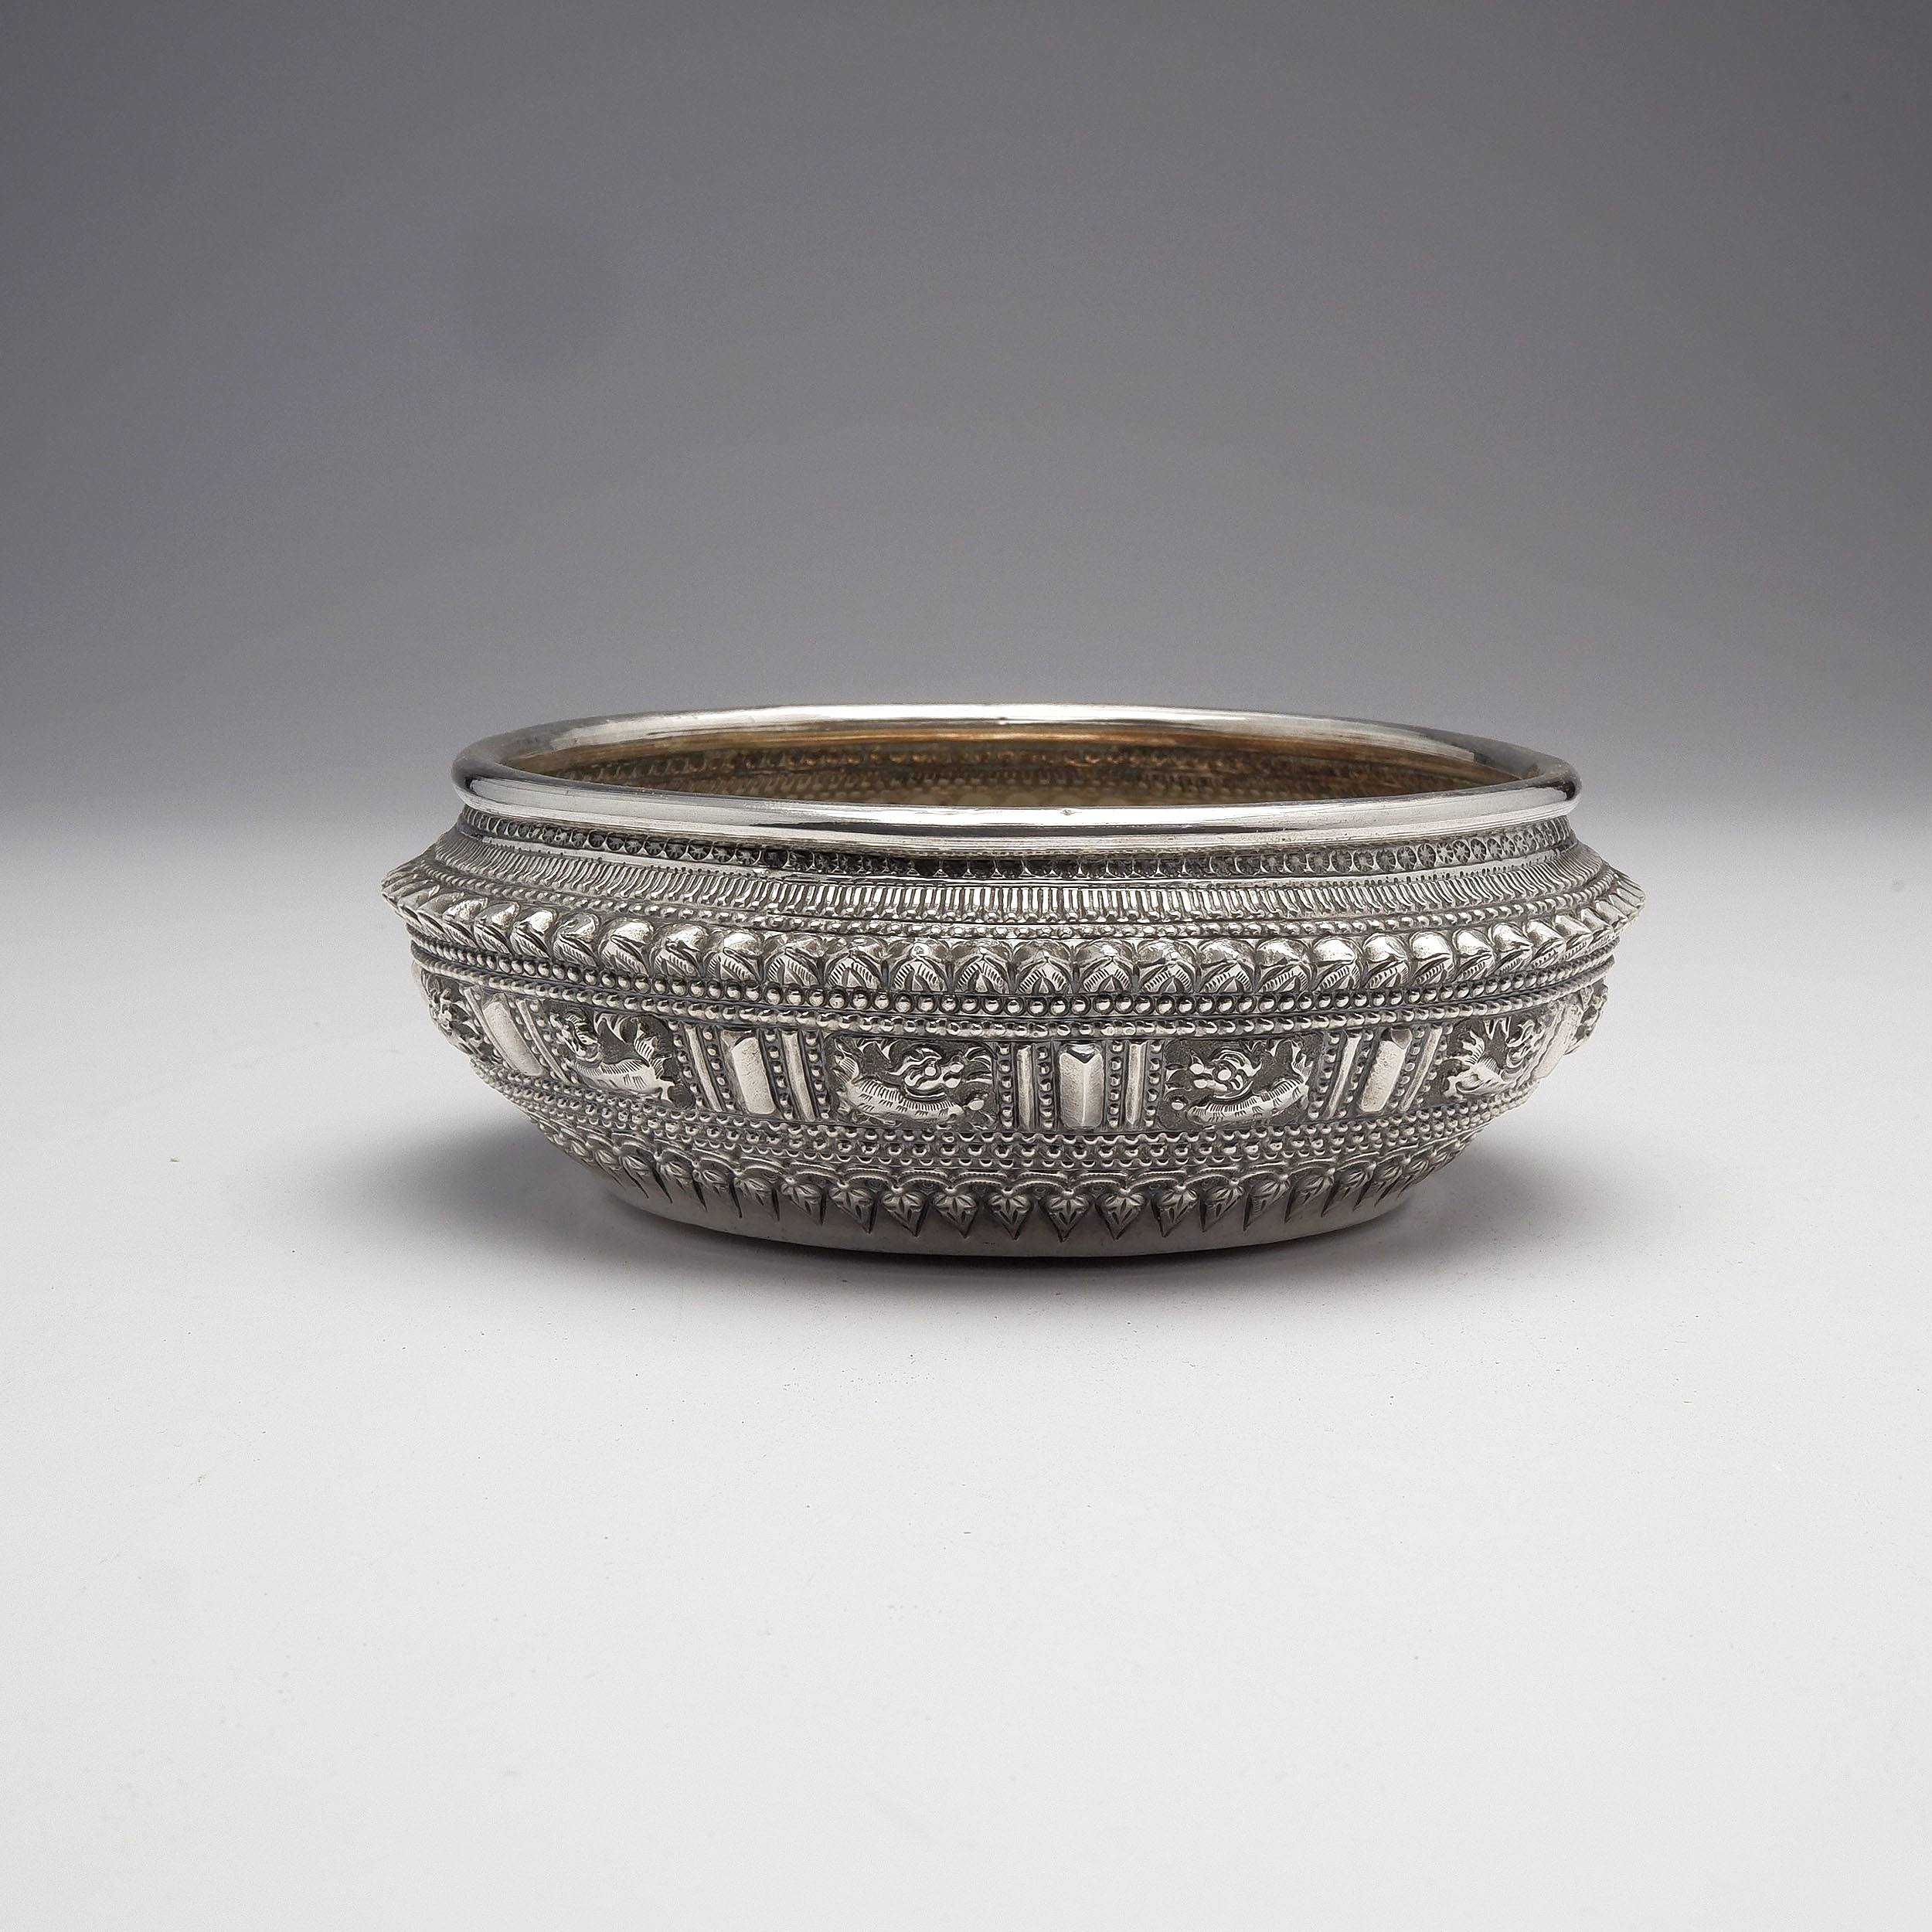 'Burmese Silver Ceremonial Bowl with Heavy Repousse Decoration, 135g'